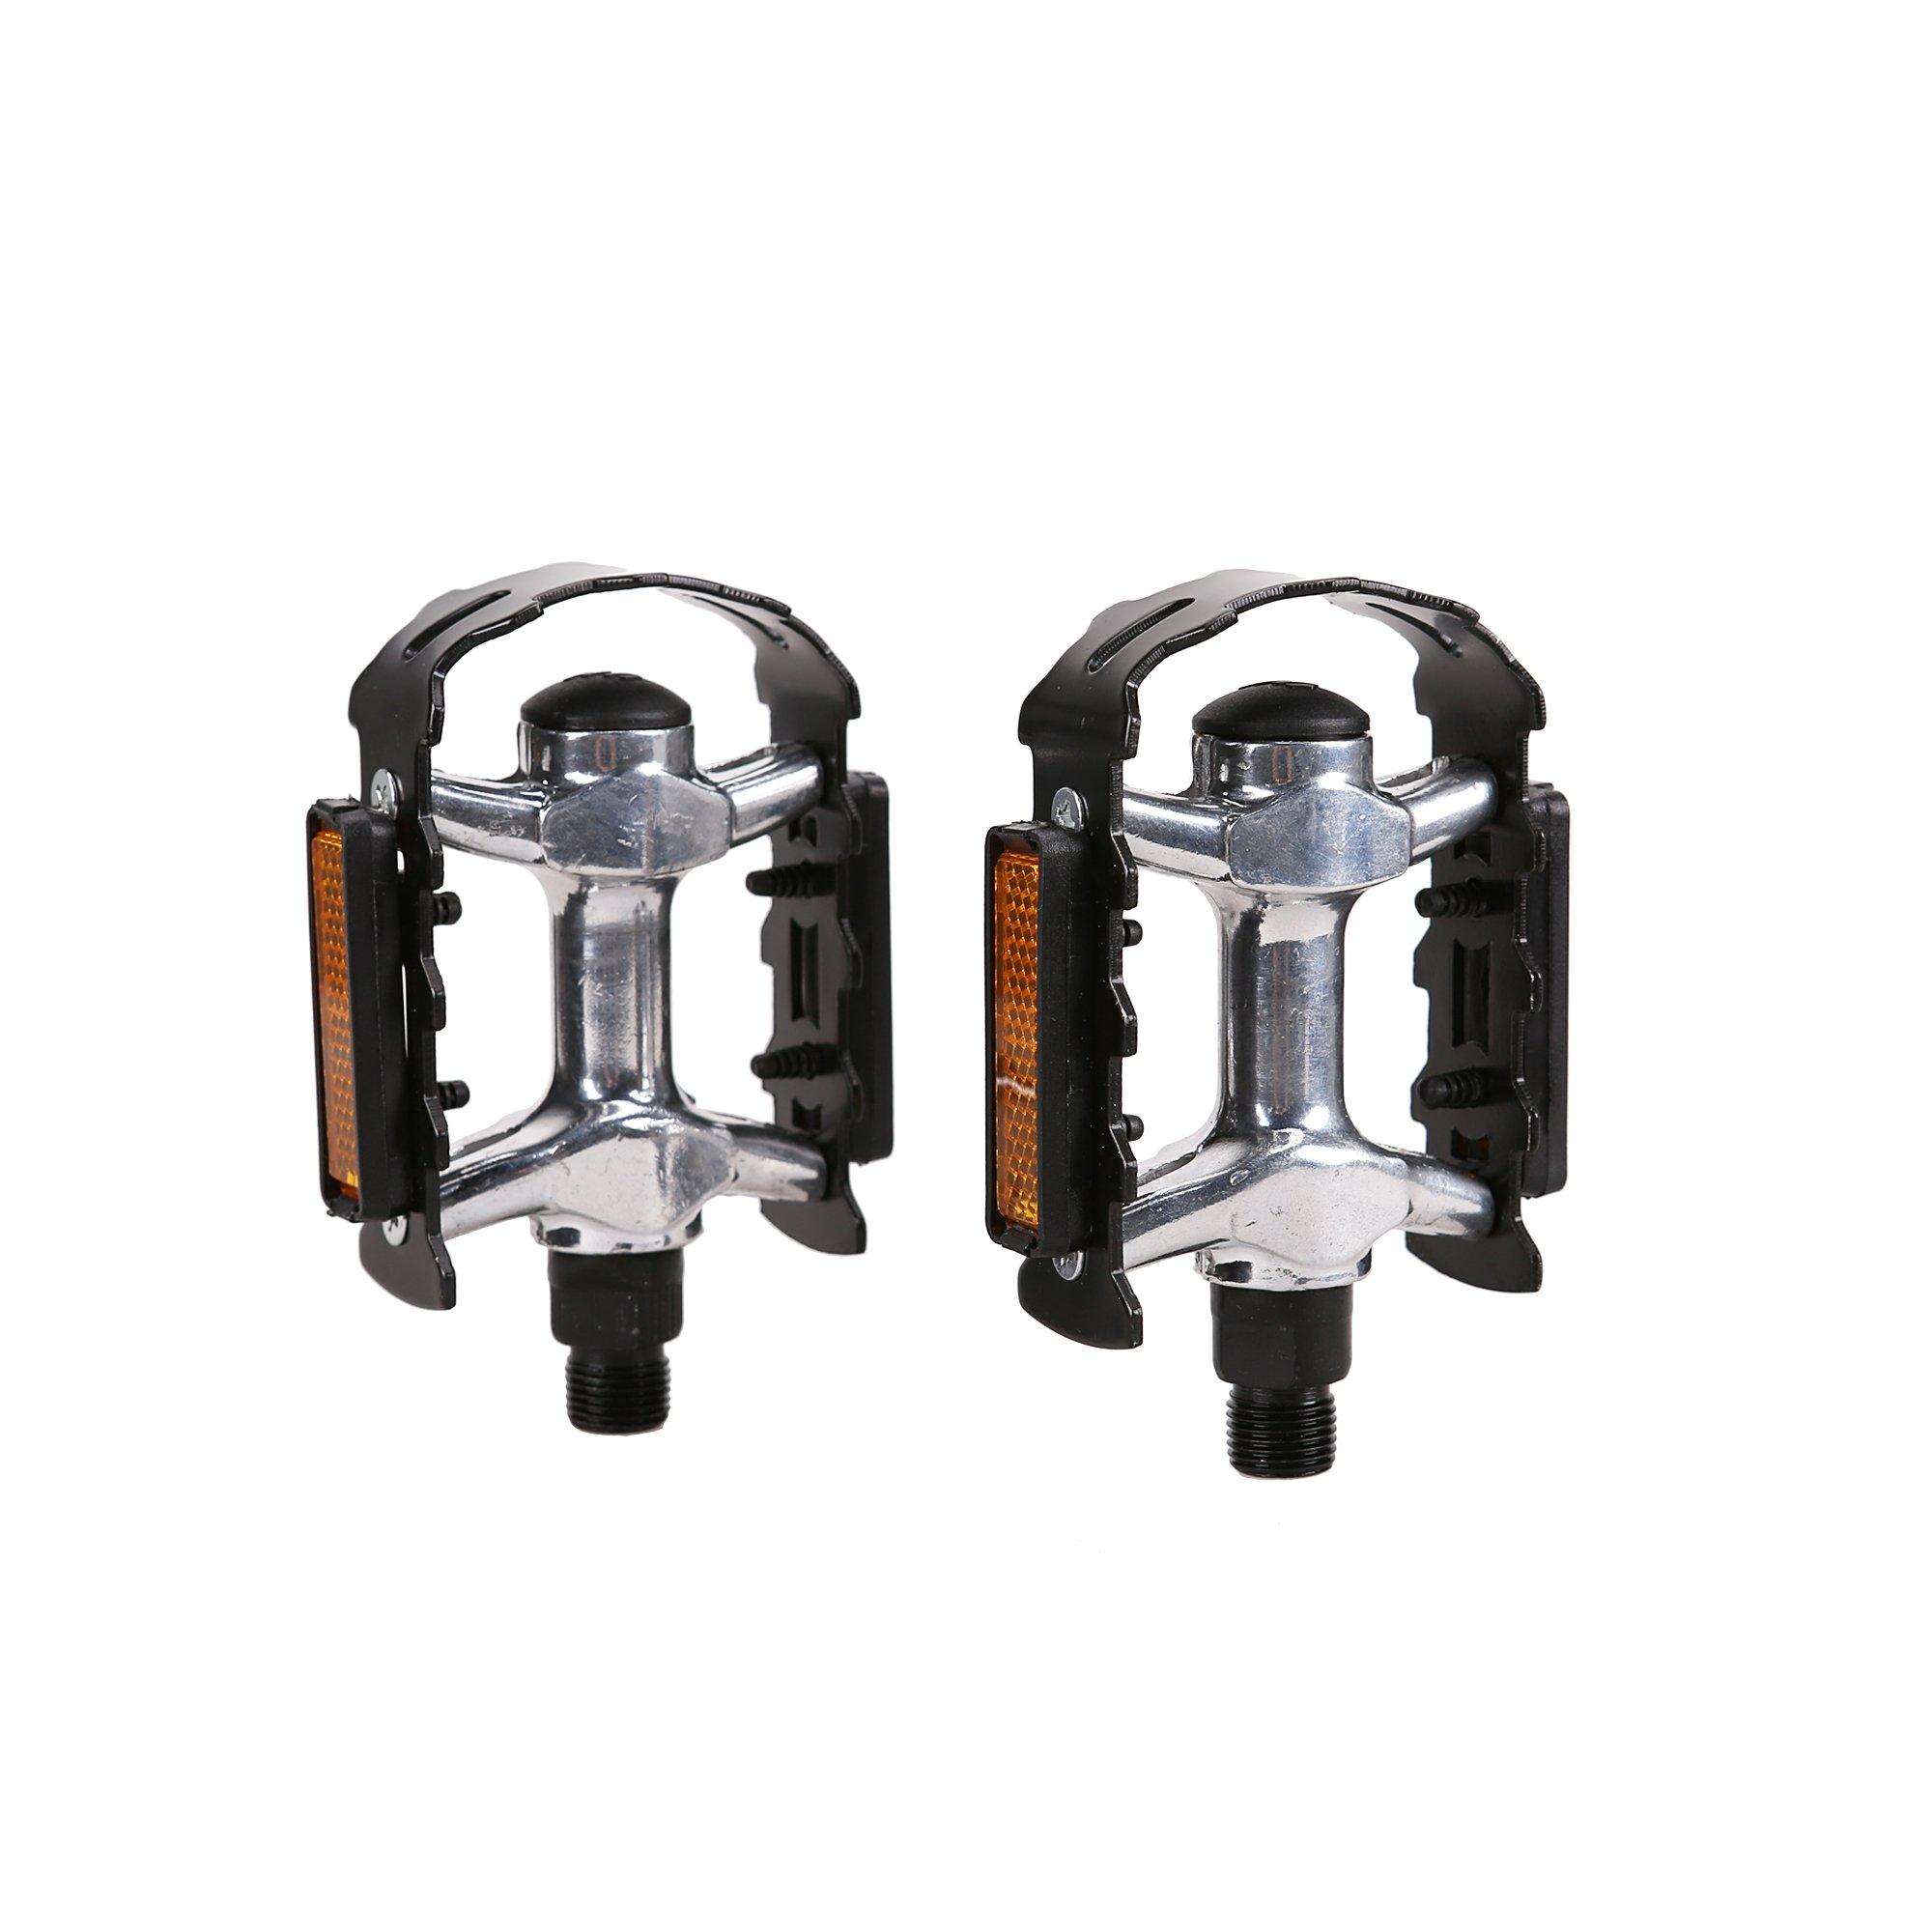 EPICORD Bike Pedals 9/16-Inch Aluminum Alloy Metal Performance Platform Mountain Road Cycling Bicycle